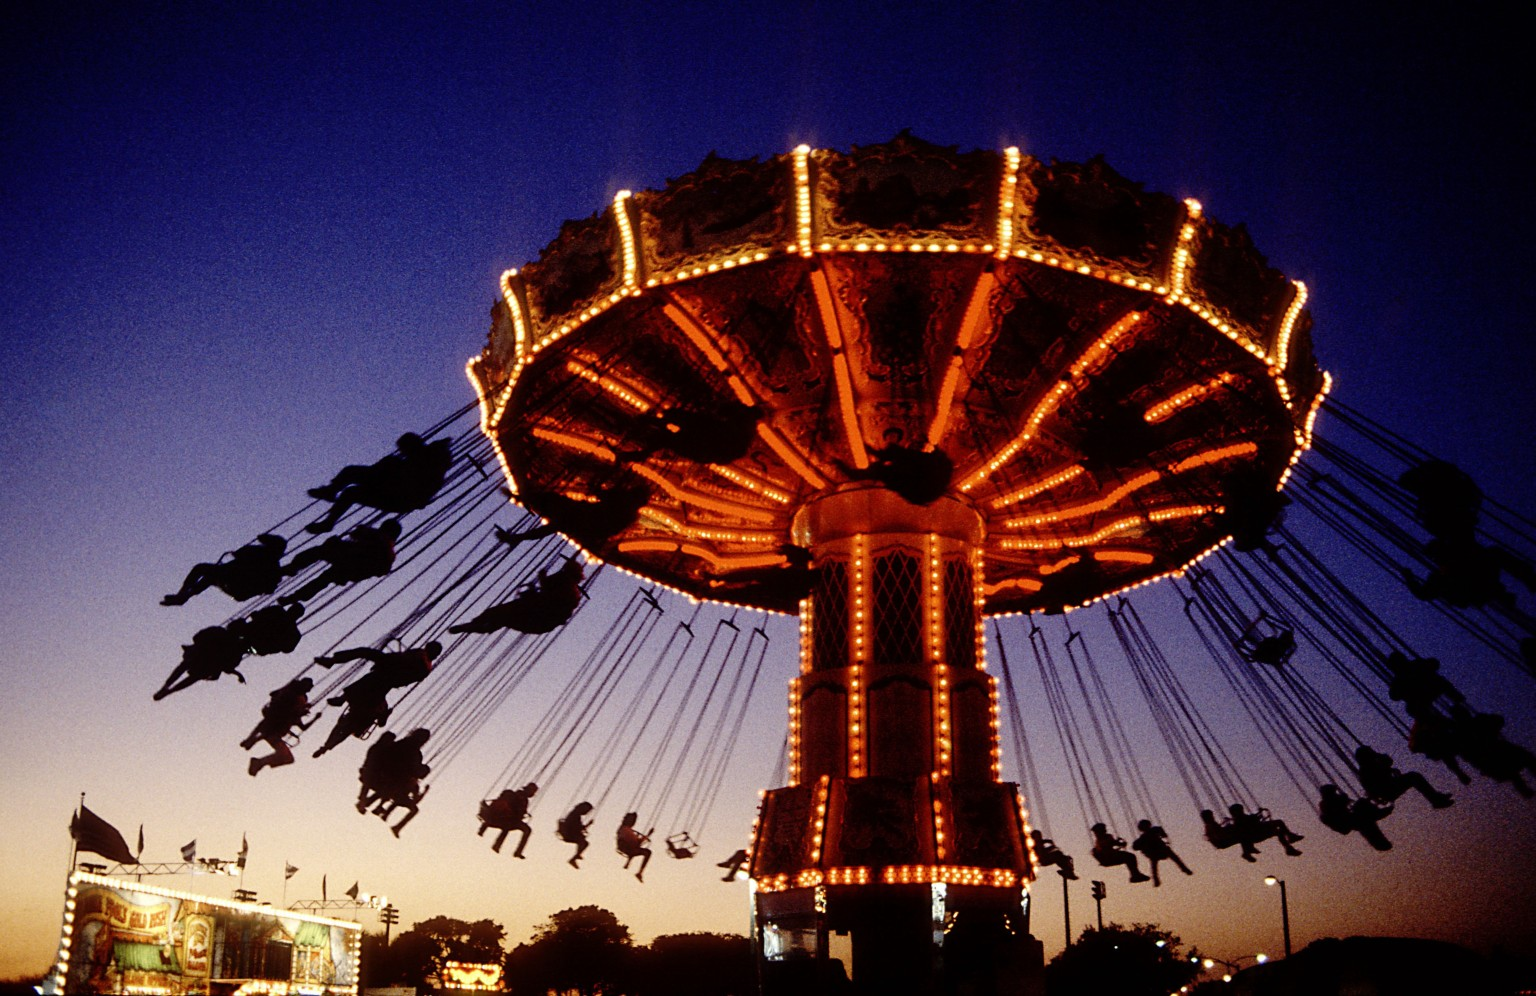 Carnival Attractions, Night Lights 300.33 Kb